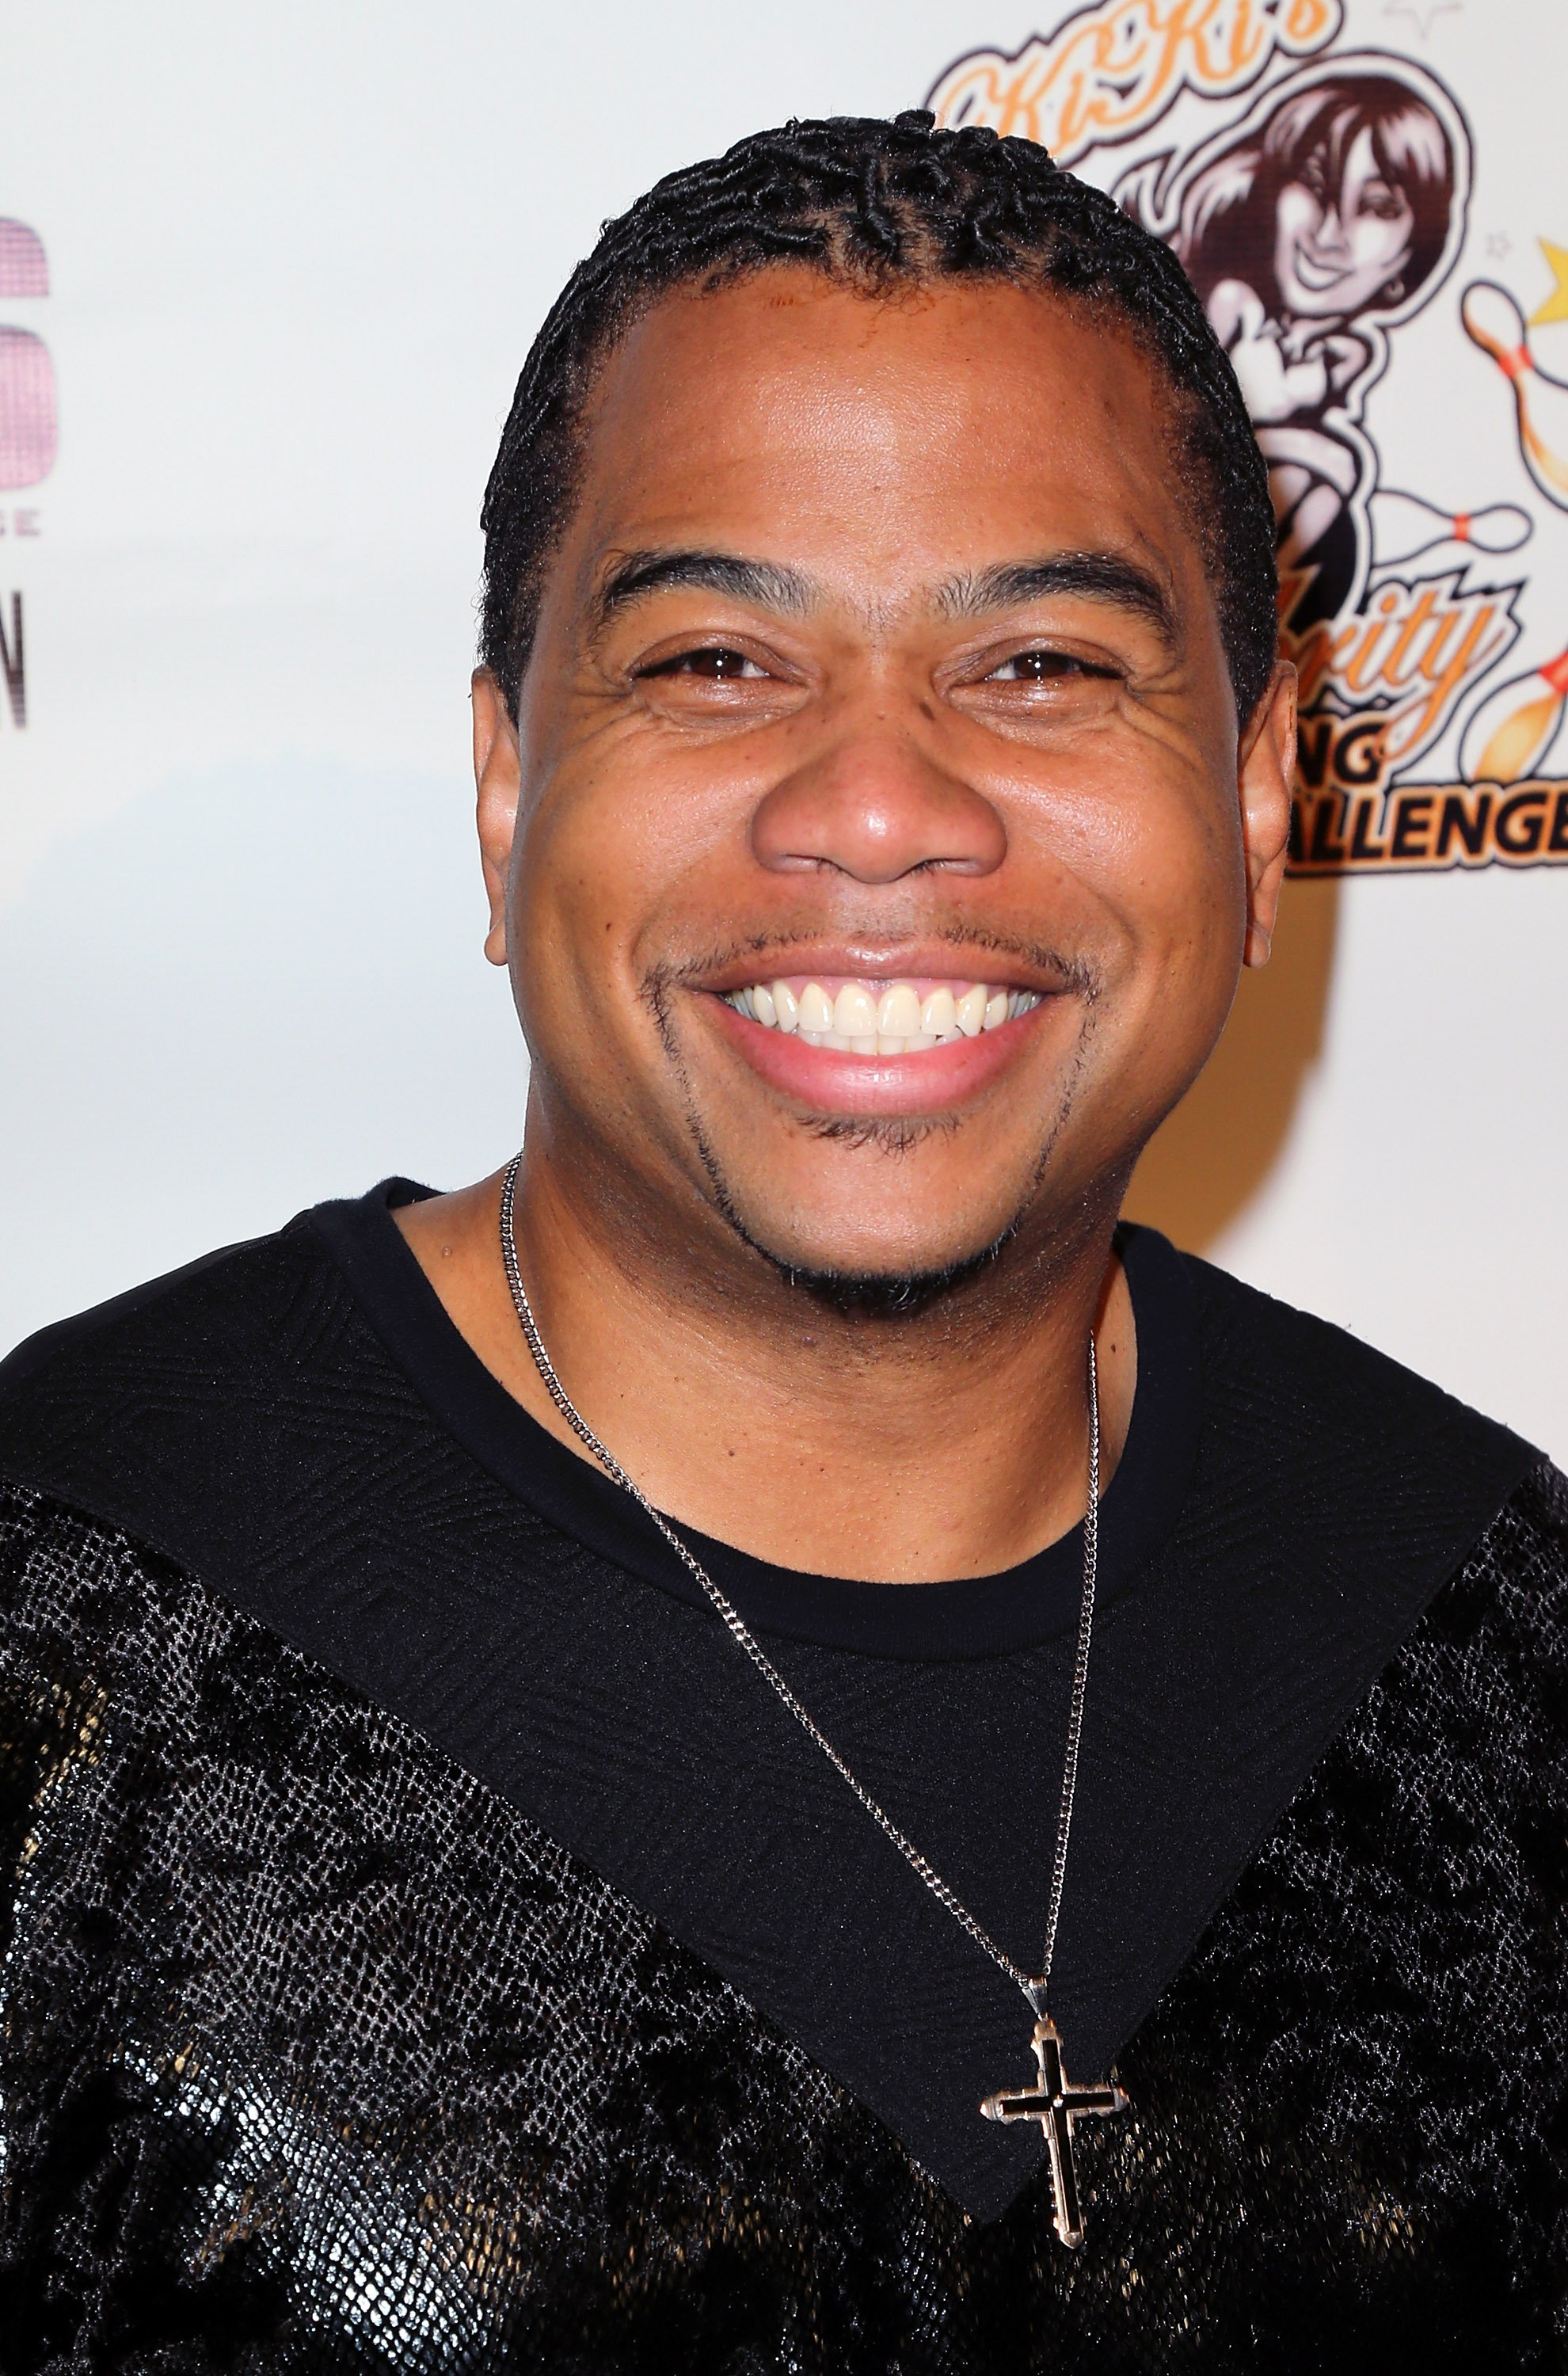 Image Credits: Getty Images / David Livingston | Actor Omar Gooding attends the K.I.S. Foundation's 12th Annual Celebrity Bowling Challenge at PINZ Entertainment Center on September 26, 2015 in Studio City, California.